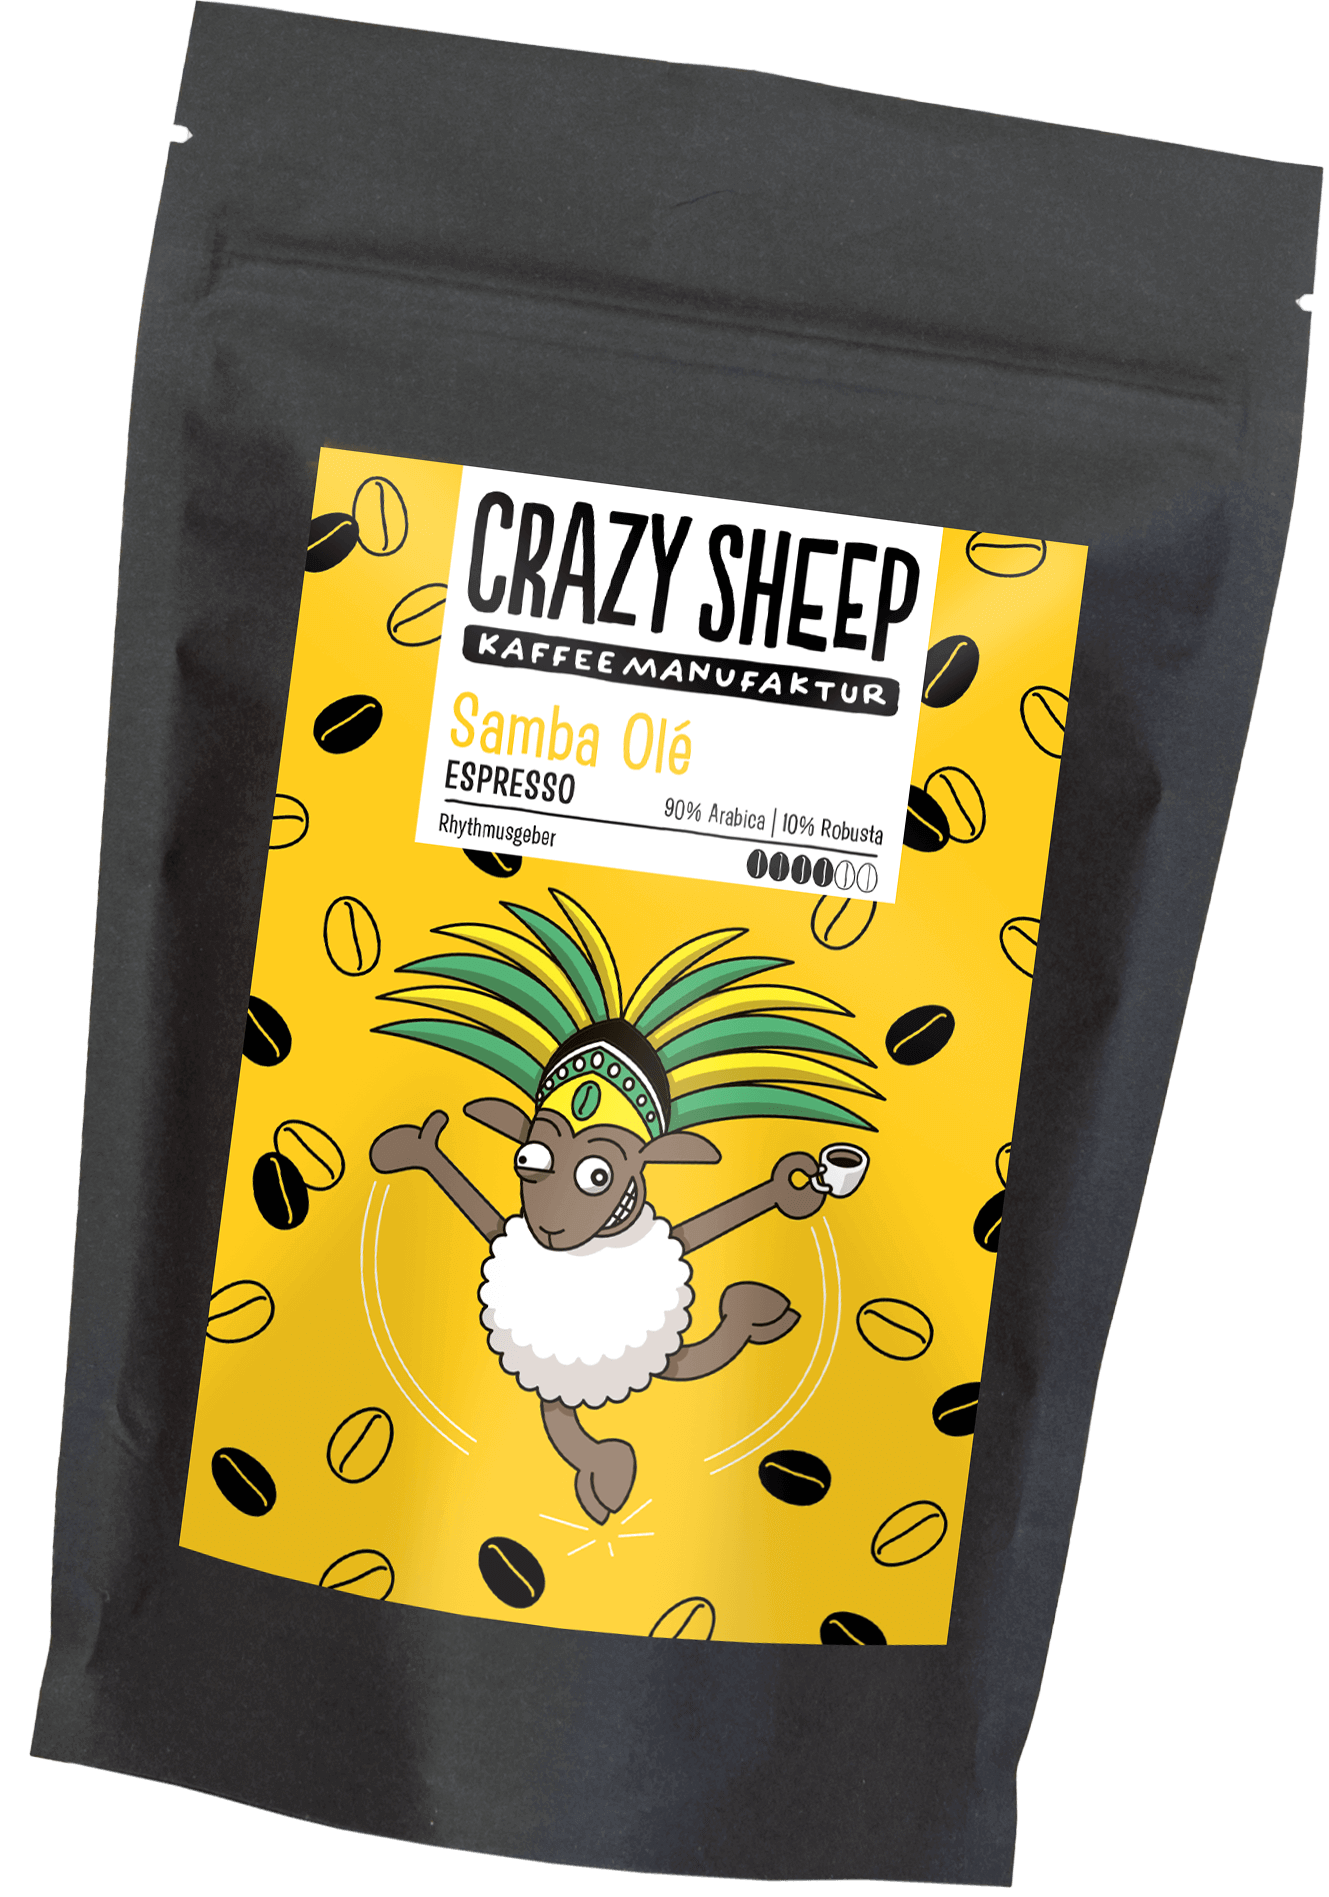 Samba Olé Crazy Sheep Coffee